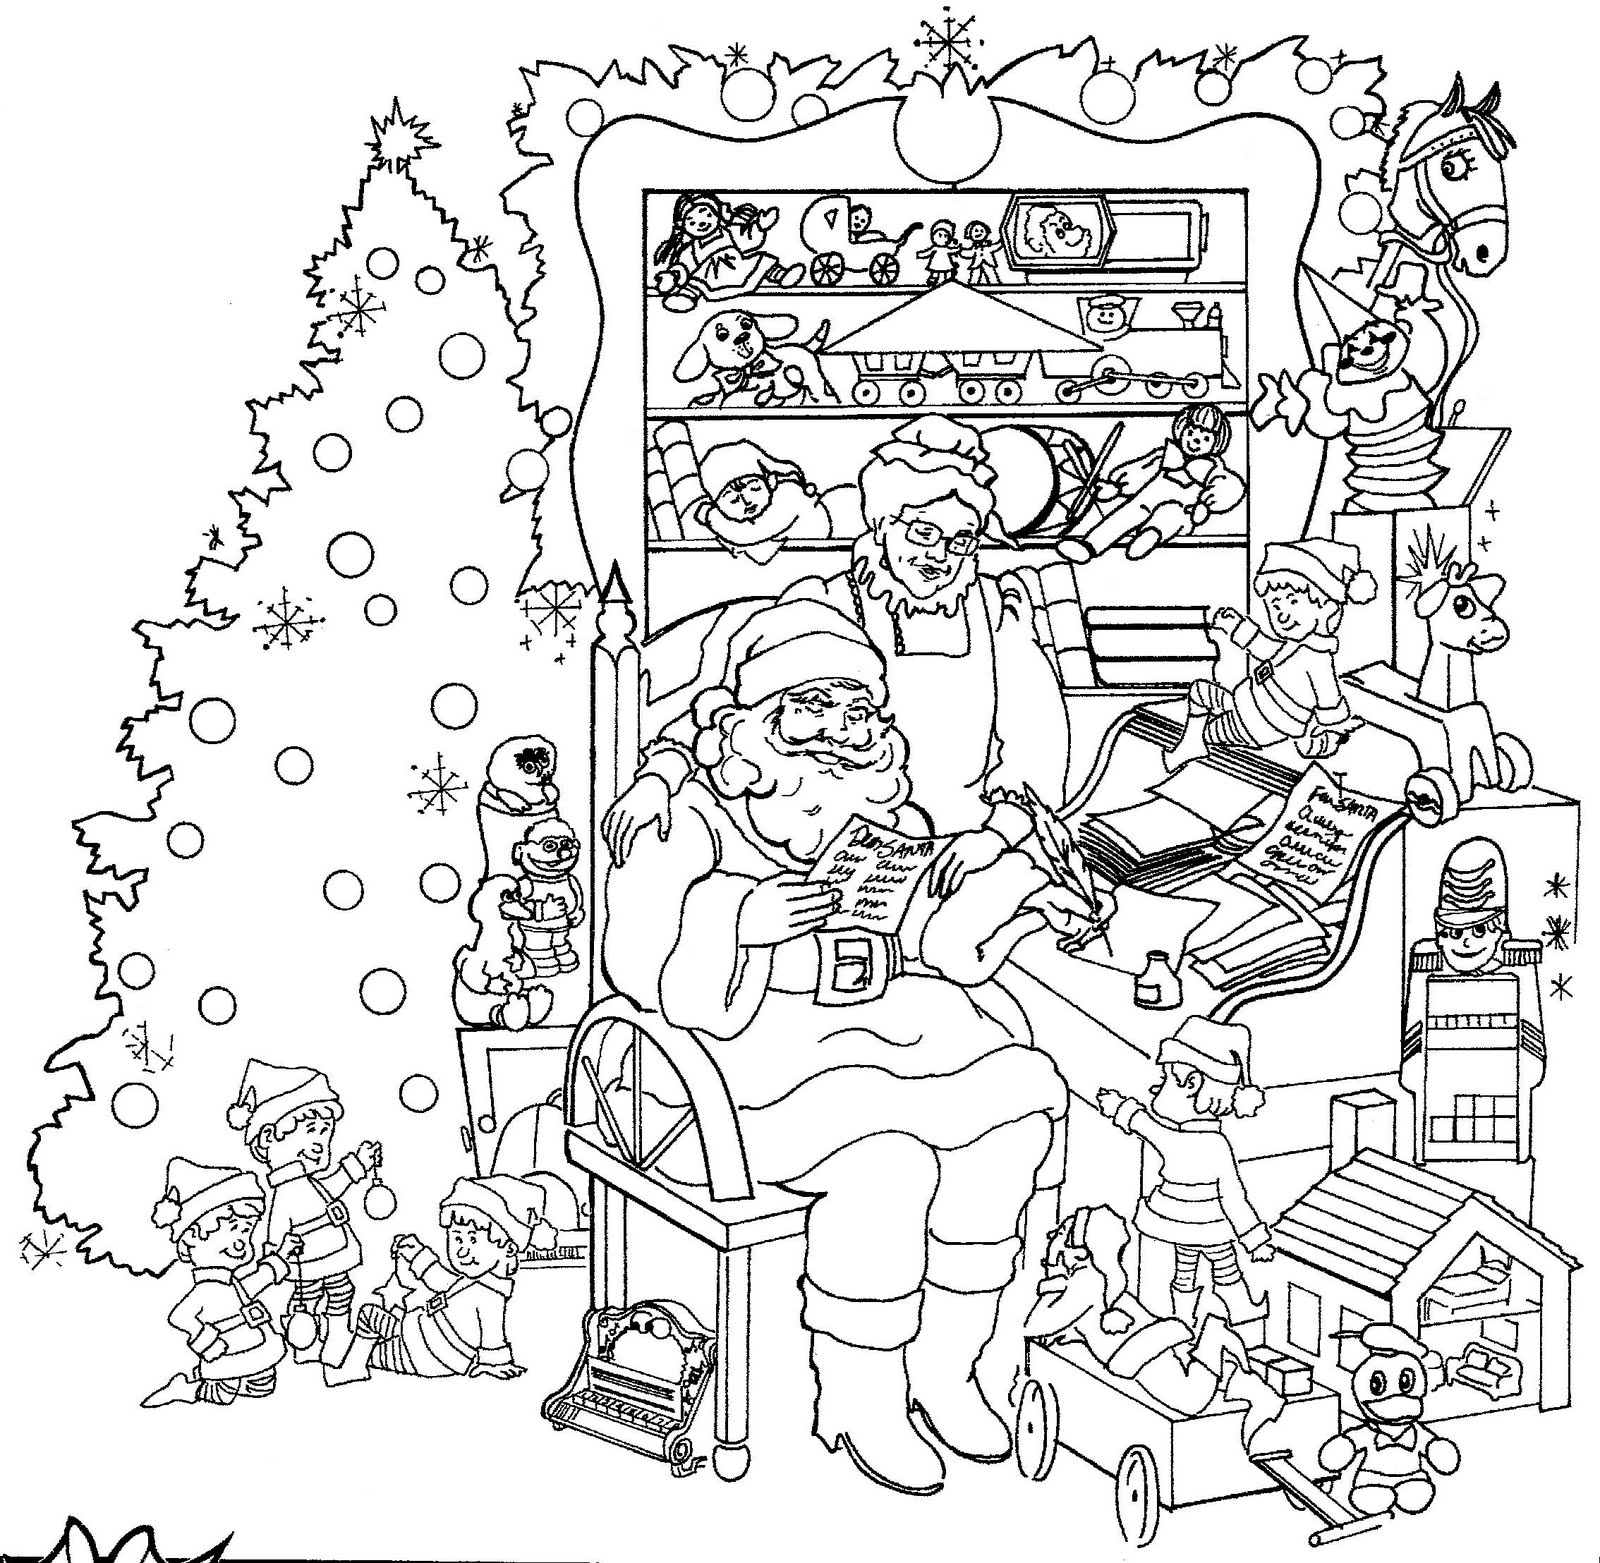 Mostly Paper Dolls: Christmas Coloring Contest, 1981